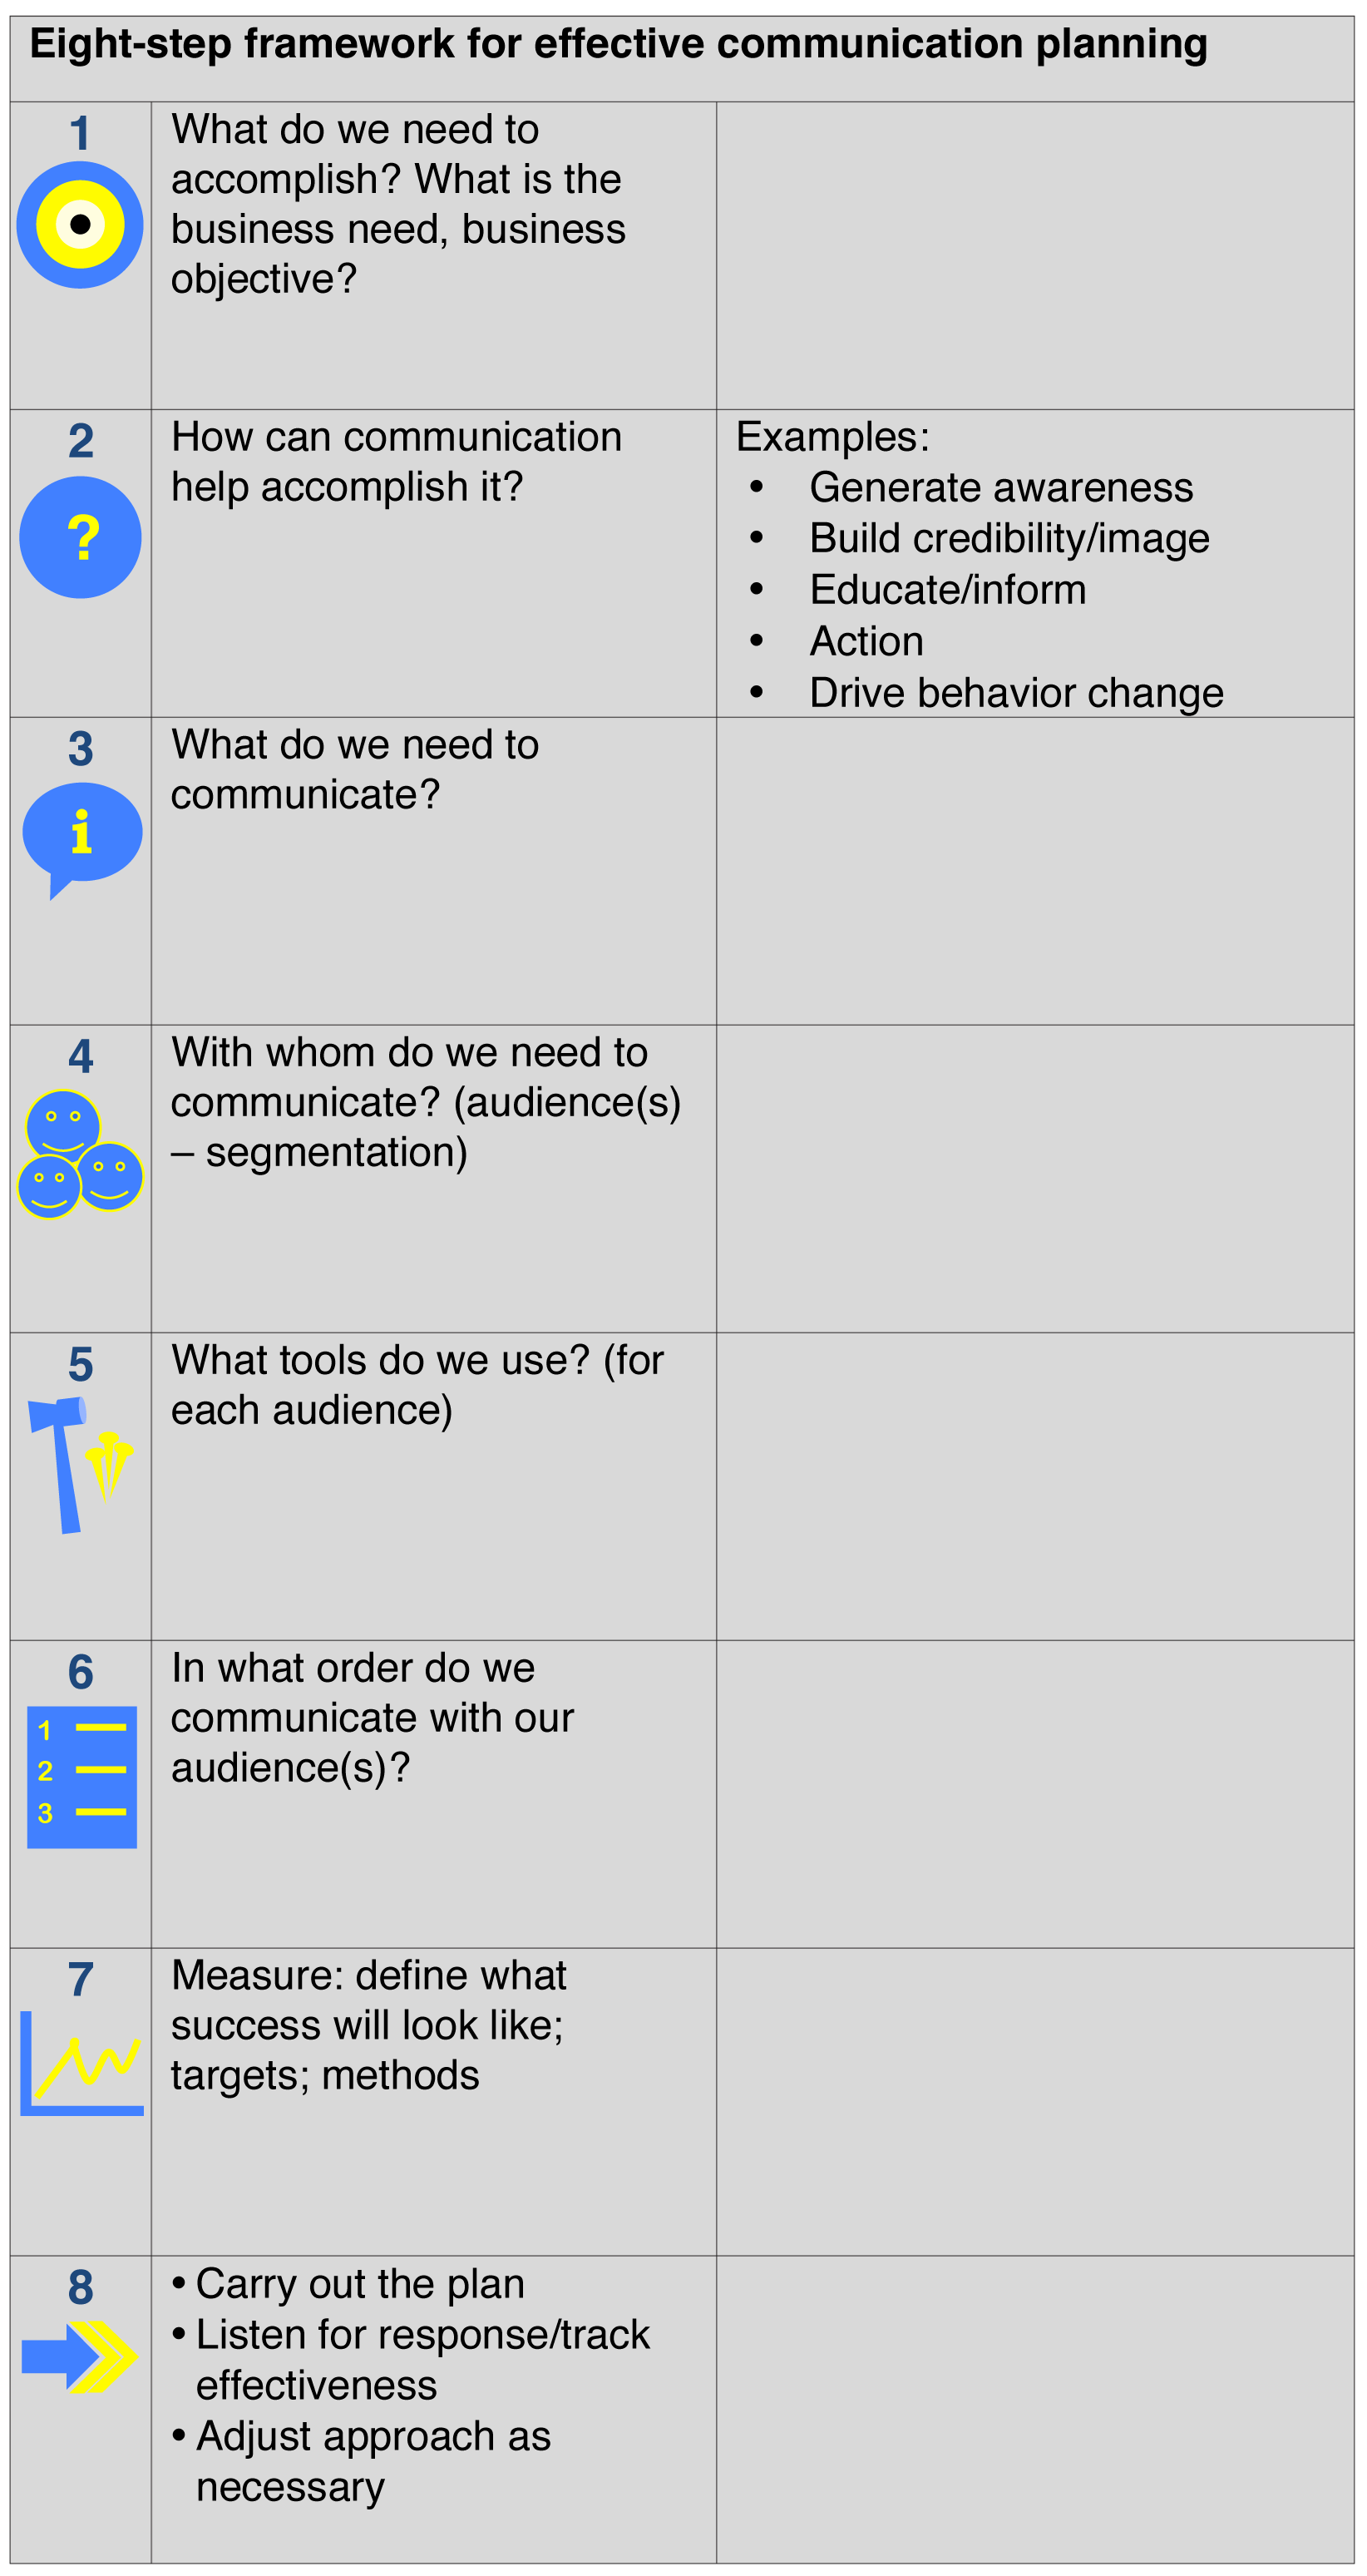 effective communication planning an 8 step framework melcrum